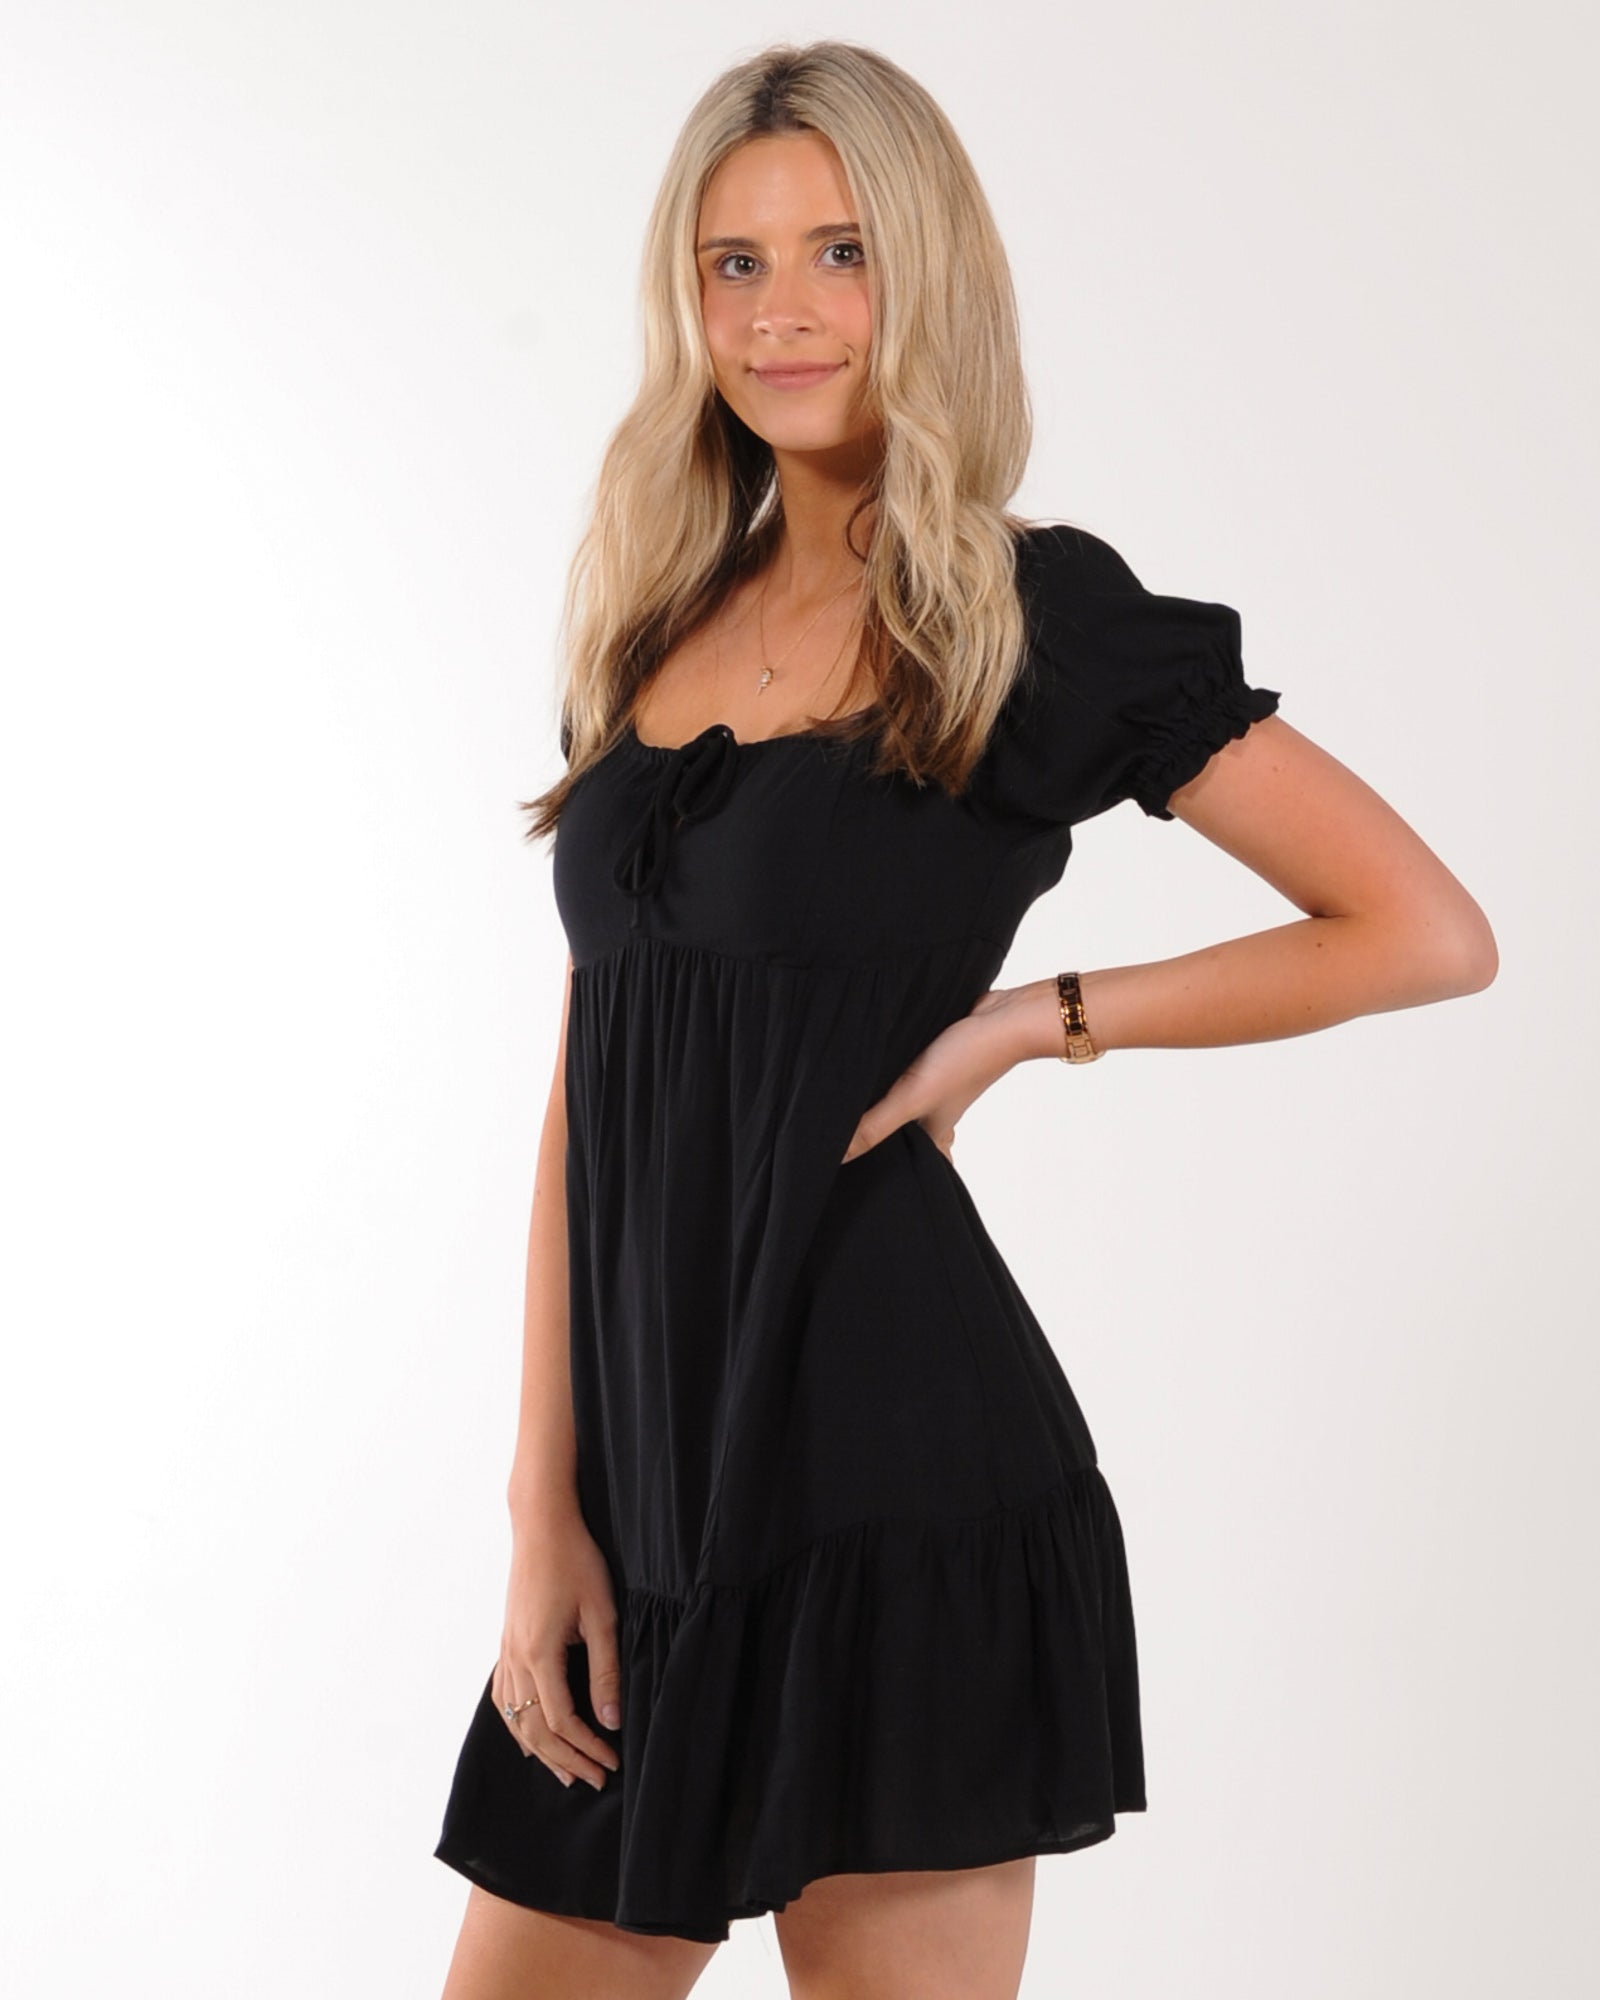 All About Eve Frida Mini Dress - Black